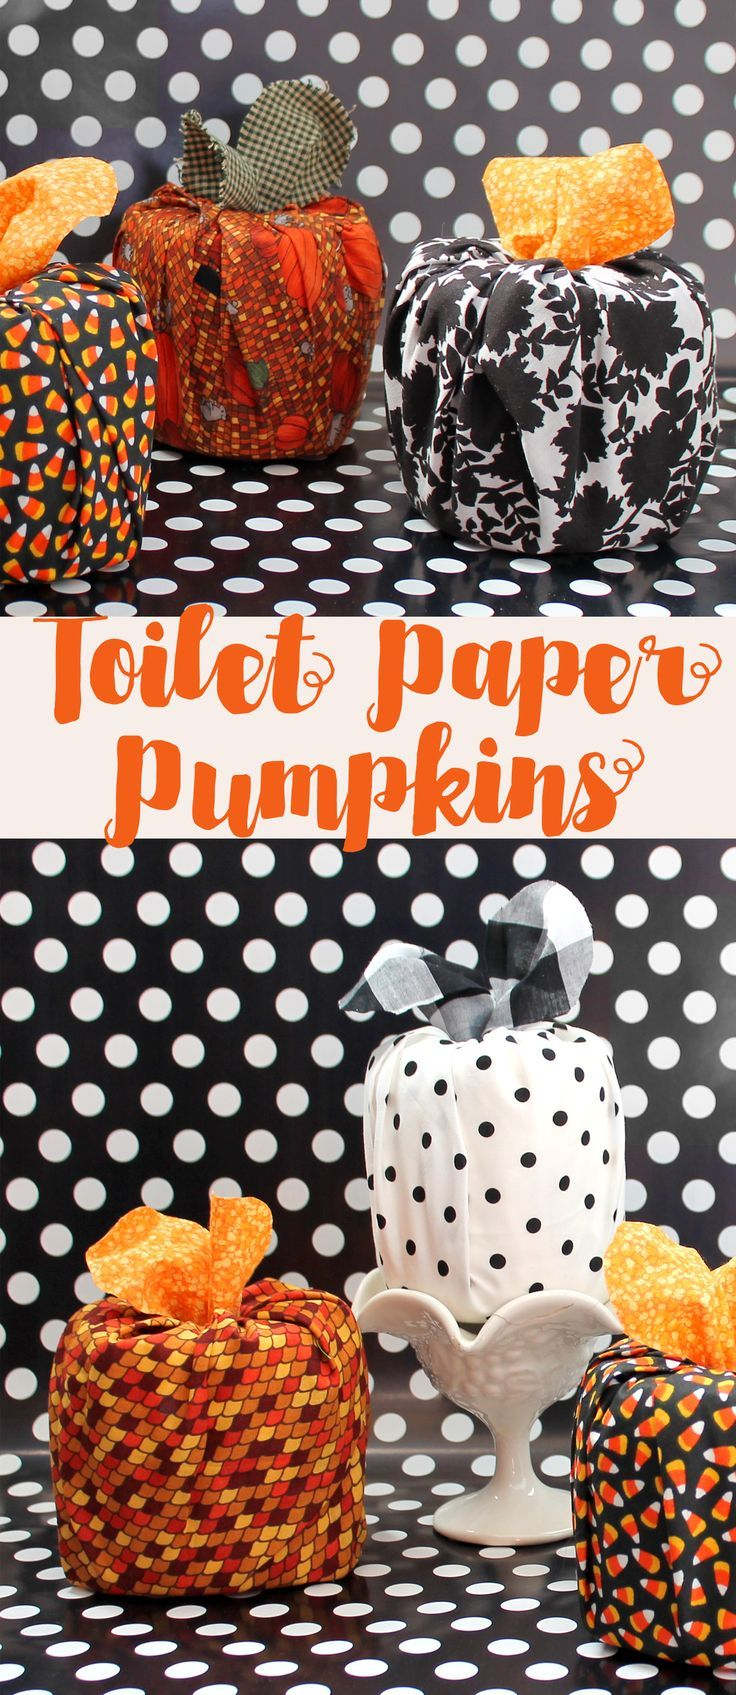 Toilet Paper Roll Pumpkins. These are so cute and easy to make! No sewing required. Cute Fall DIY decor craft anyone can make.